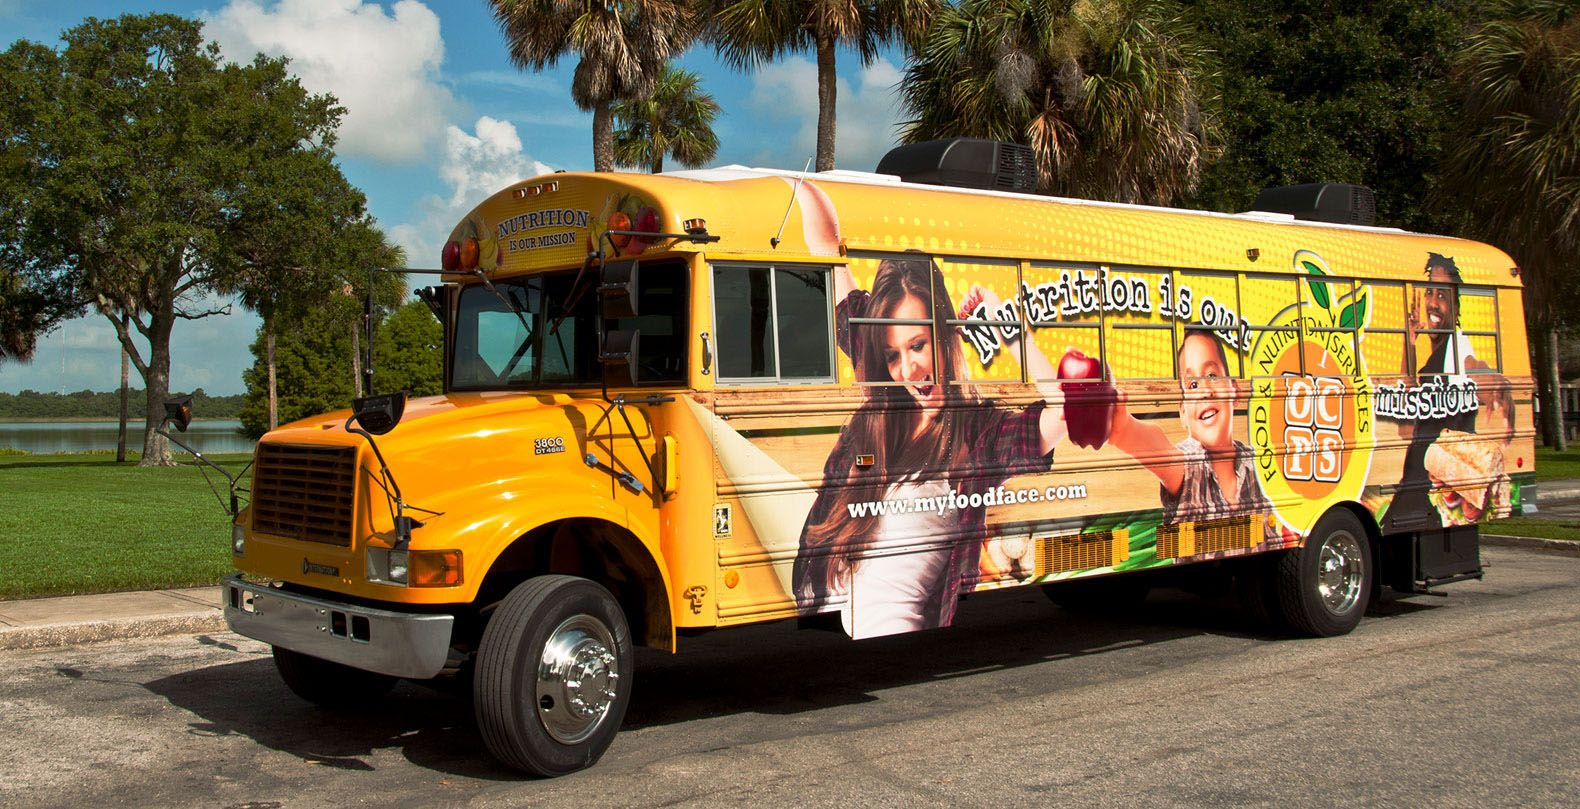 Orange County Public Schools undercuts the stigma around free and reduced-price meals by bringing food to students on this colorful bus.